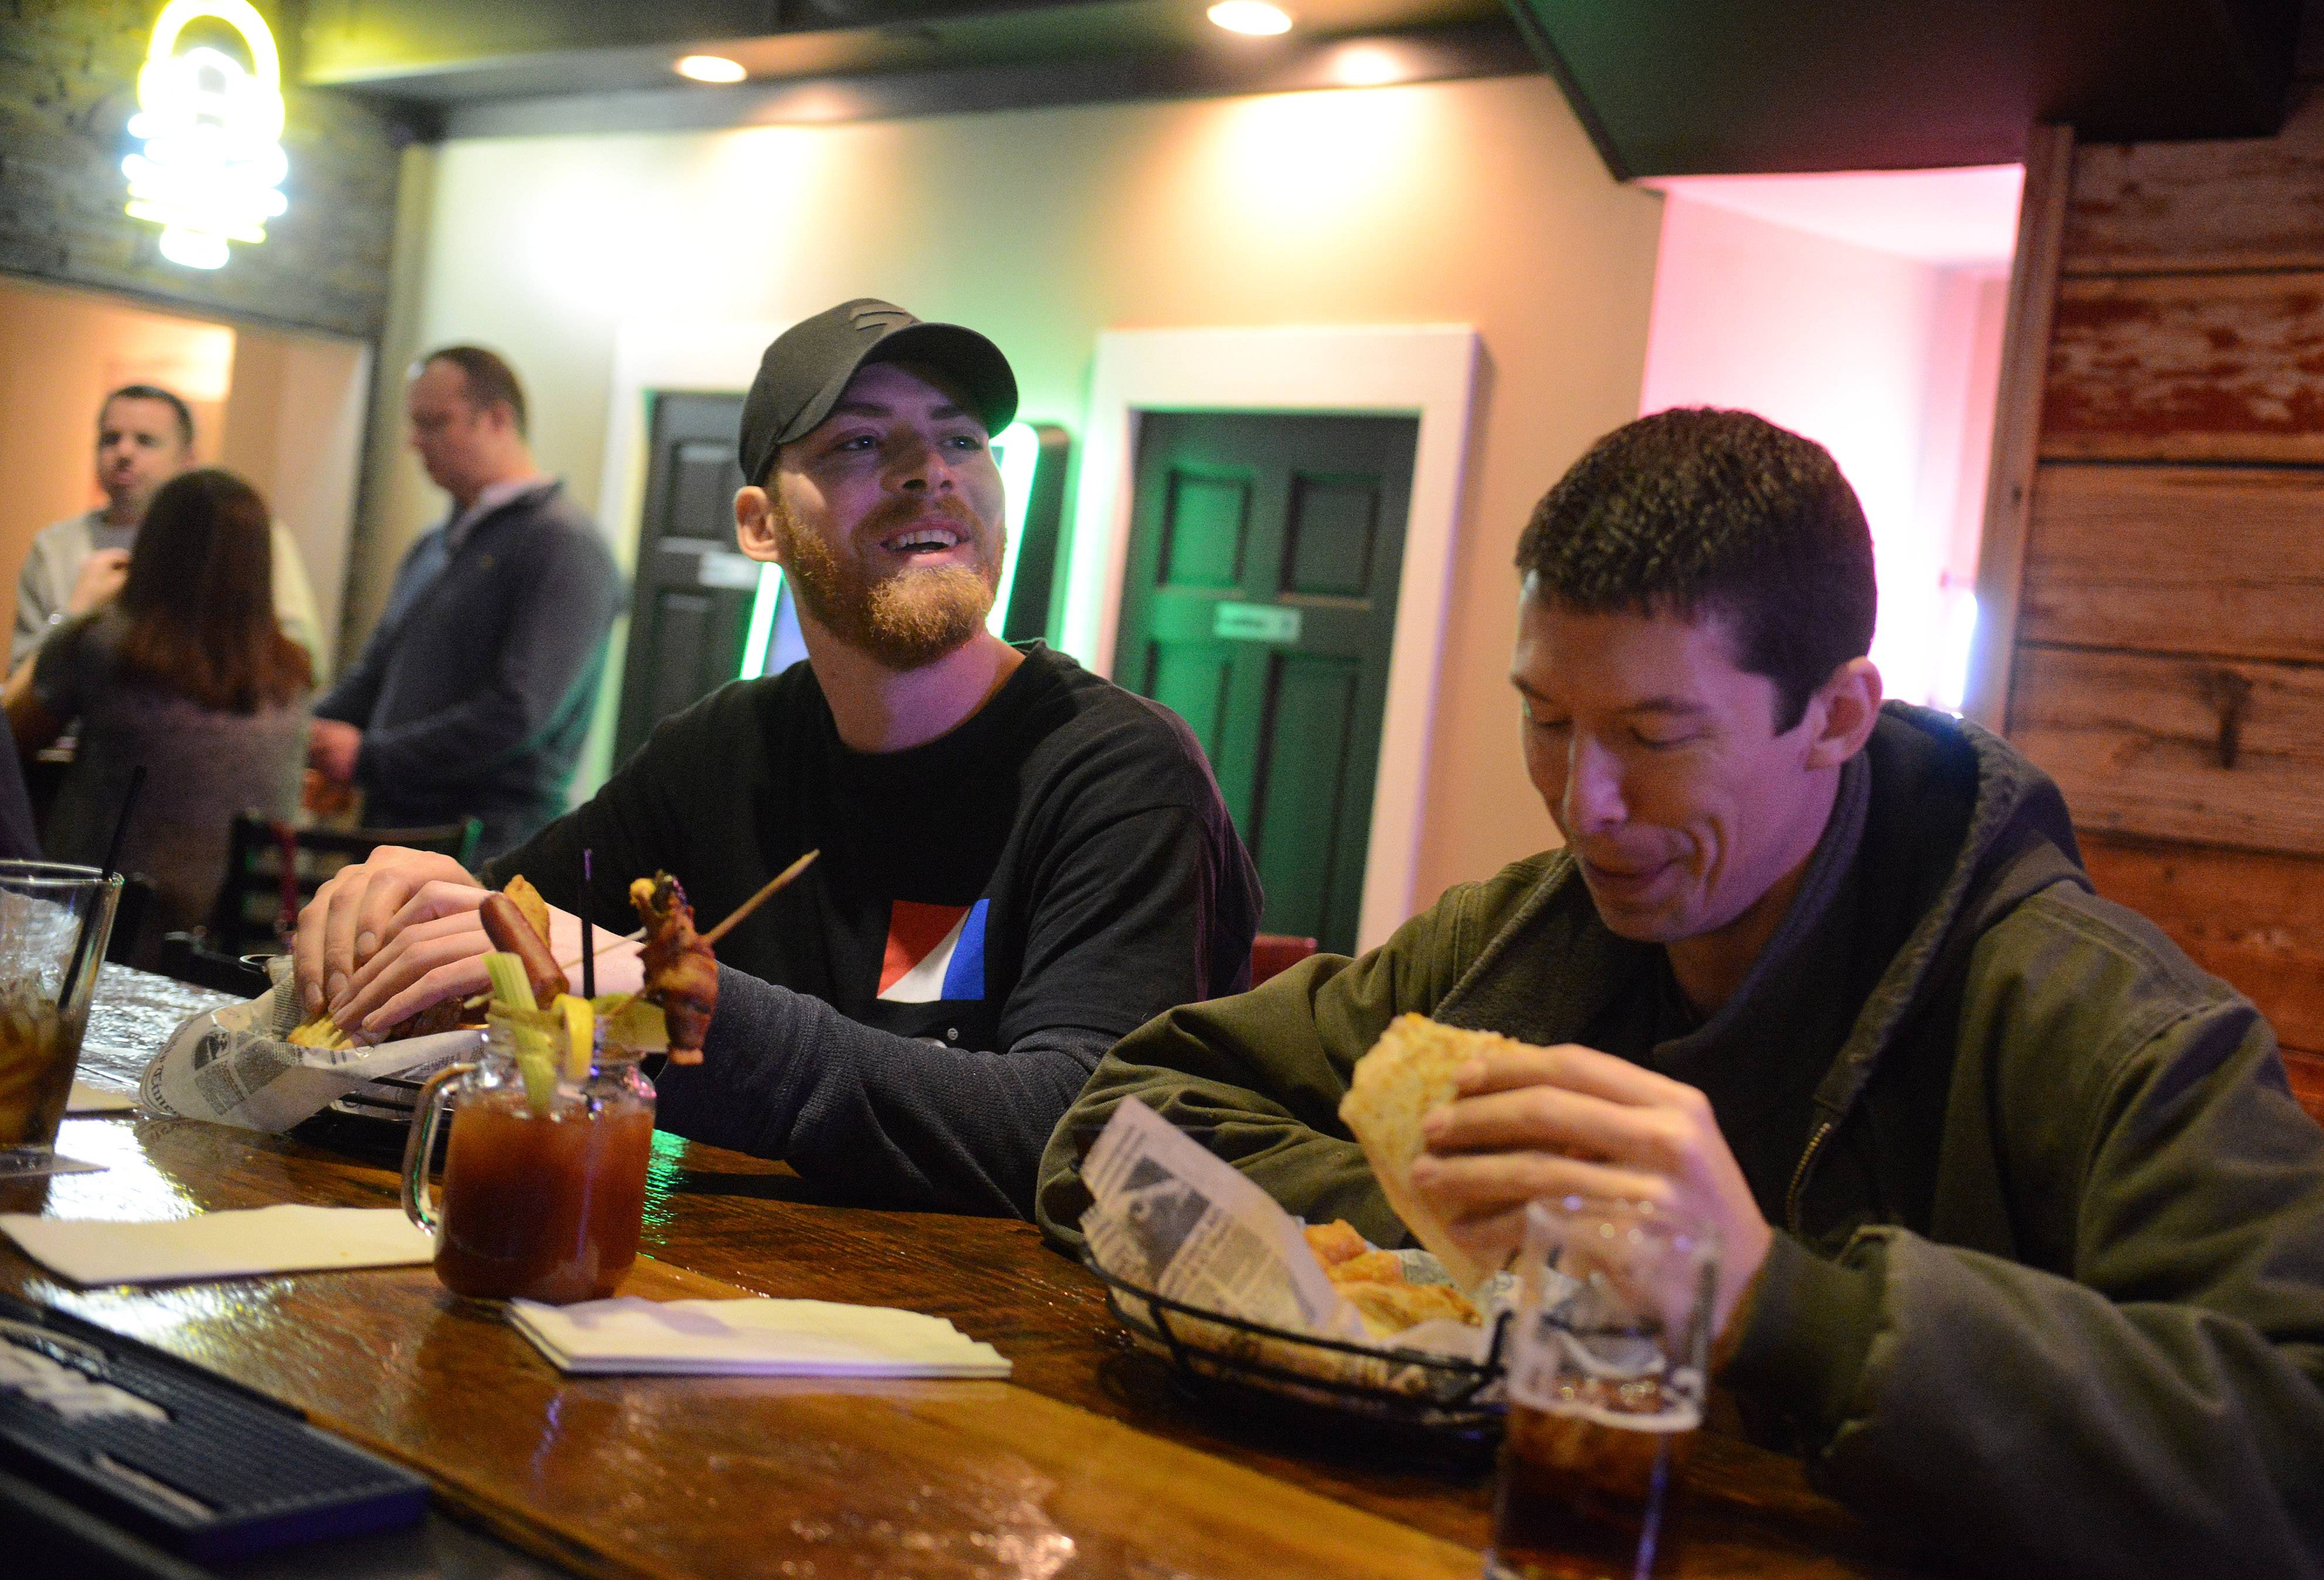 Brothers Kevin, left, and Jeff Thorne enjoy dinner at Eddie Gaedel Pub and Grill in Elburn.